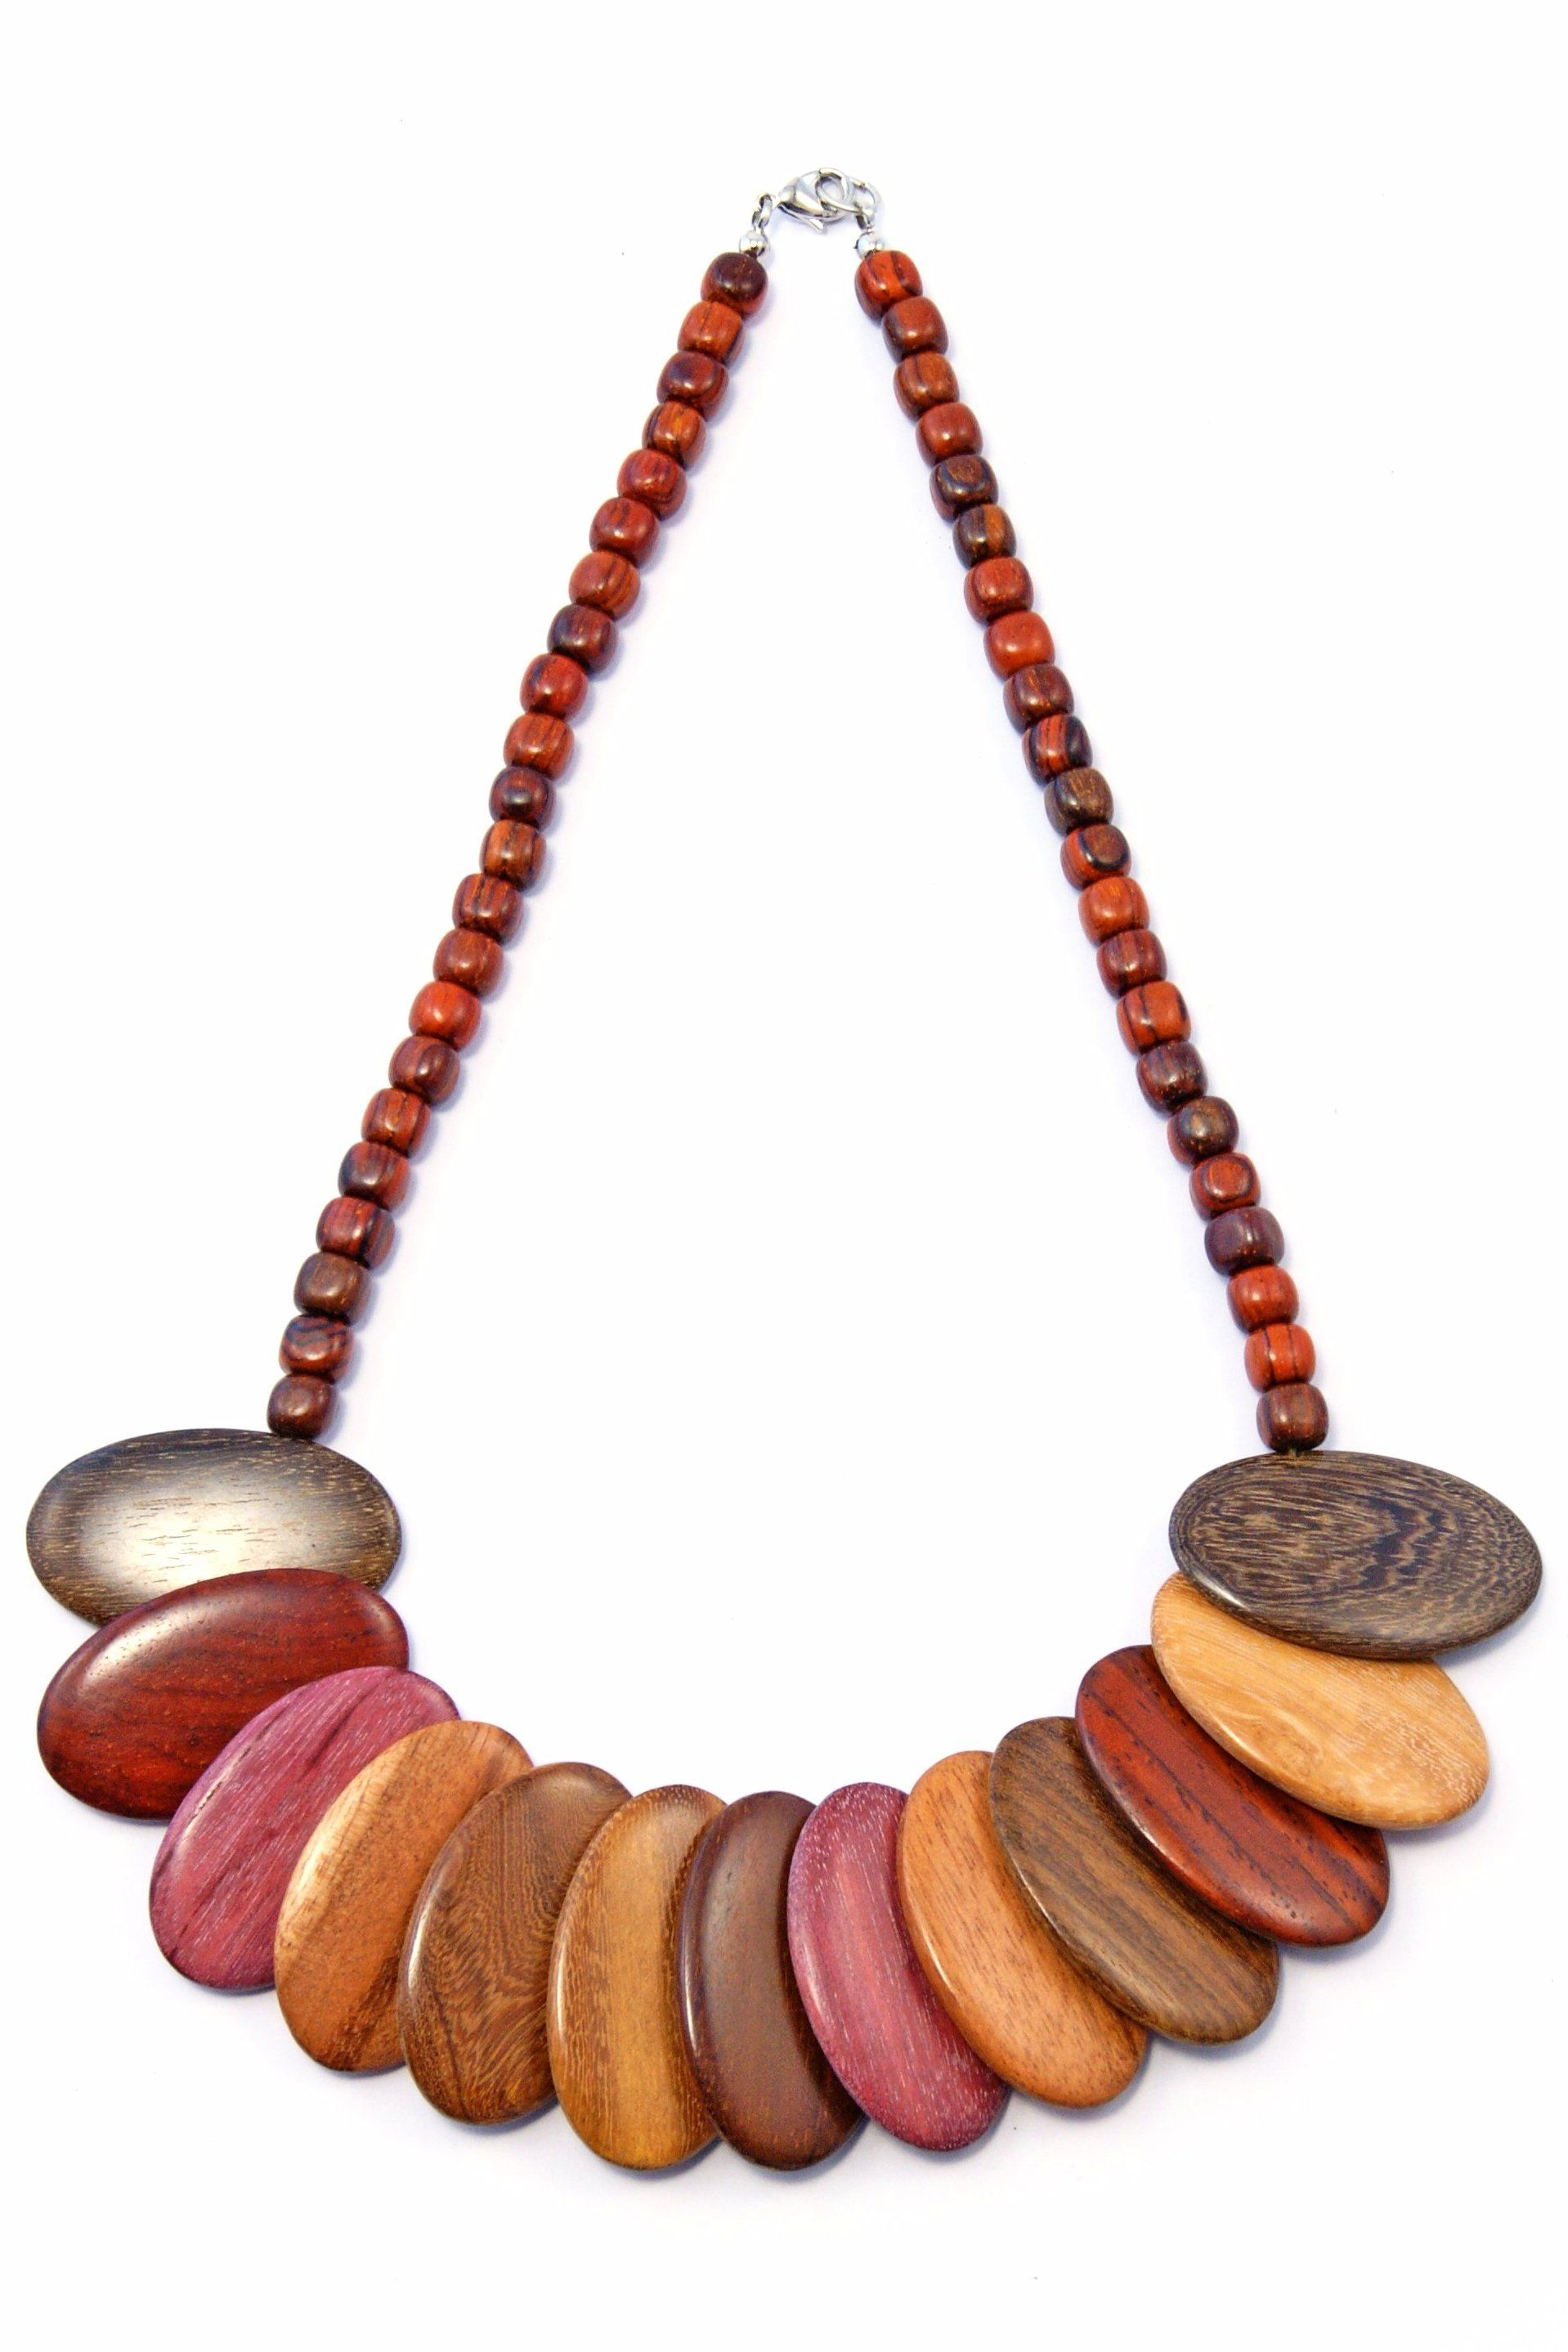 TICA SURF Unique tribal exotic wood necklace - Multicolor Oval Over - EE435 ~ Exotic wood tribal necklace ~ Polished multicolor beads ~ Made with genuine unstained natural woods ~ Handmade in Costa Rica Dimensions: 20 x 1.5 x 0.5 inches Color tone may vary EE435